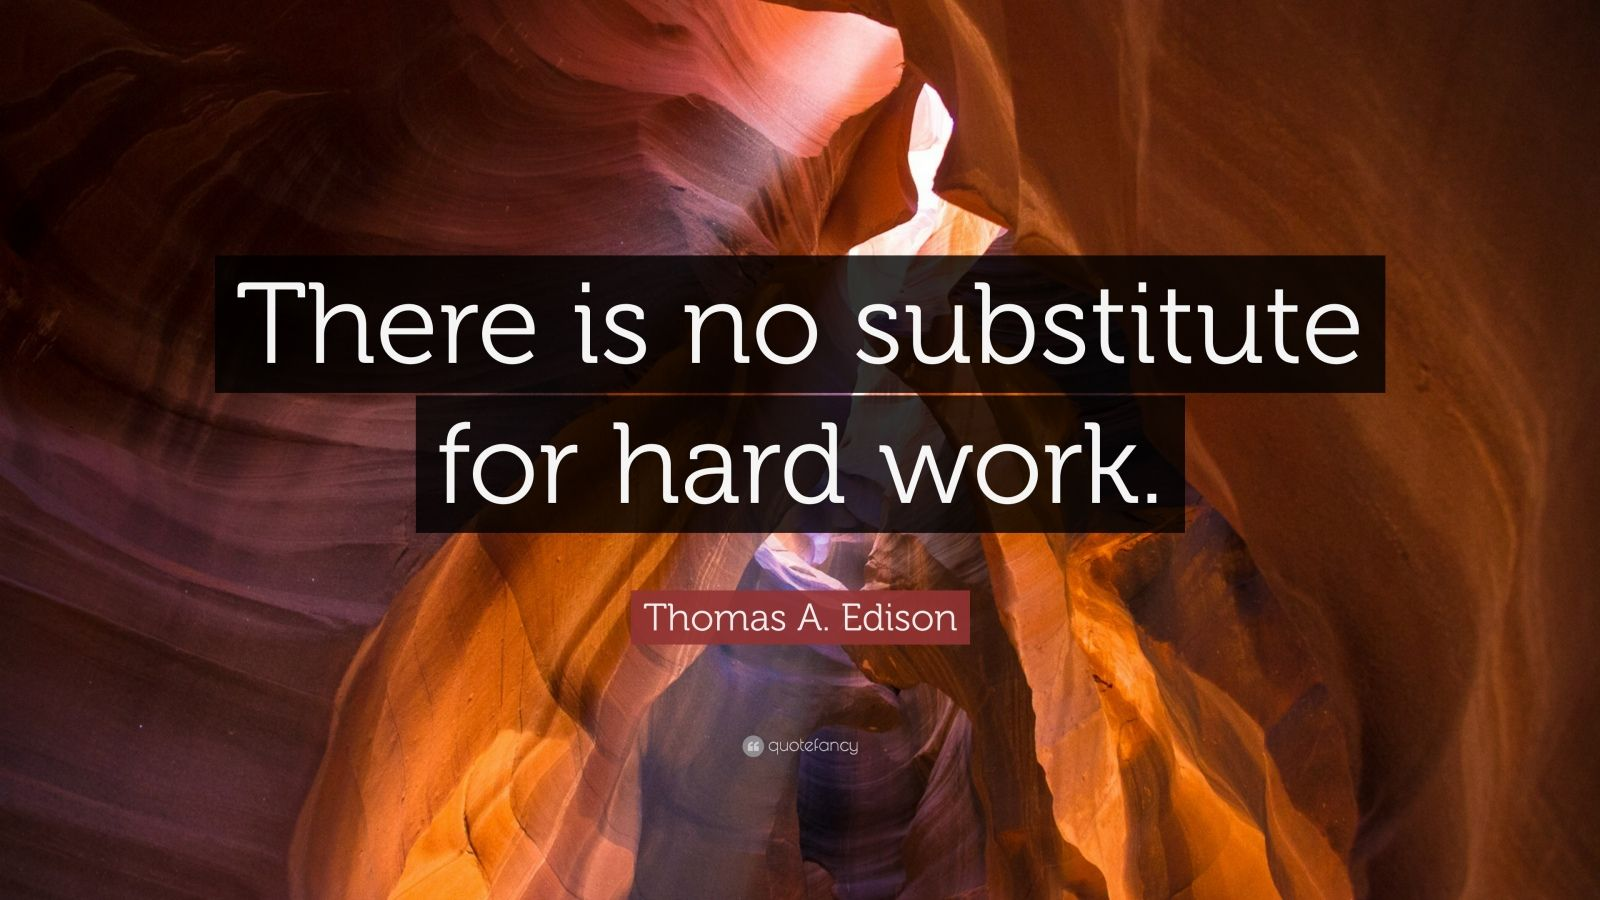 thomas edison and hard work There is no substitute for hard work by thomas edison from my large collection of inspirational quotes and motivational sayings.